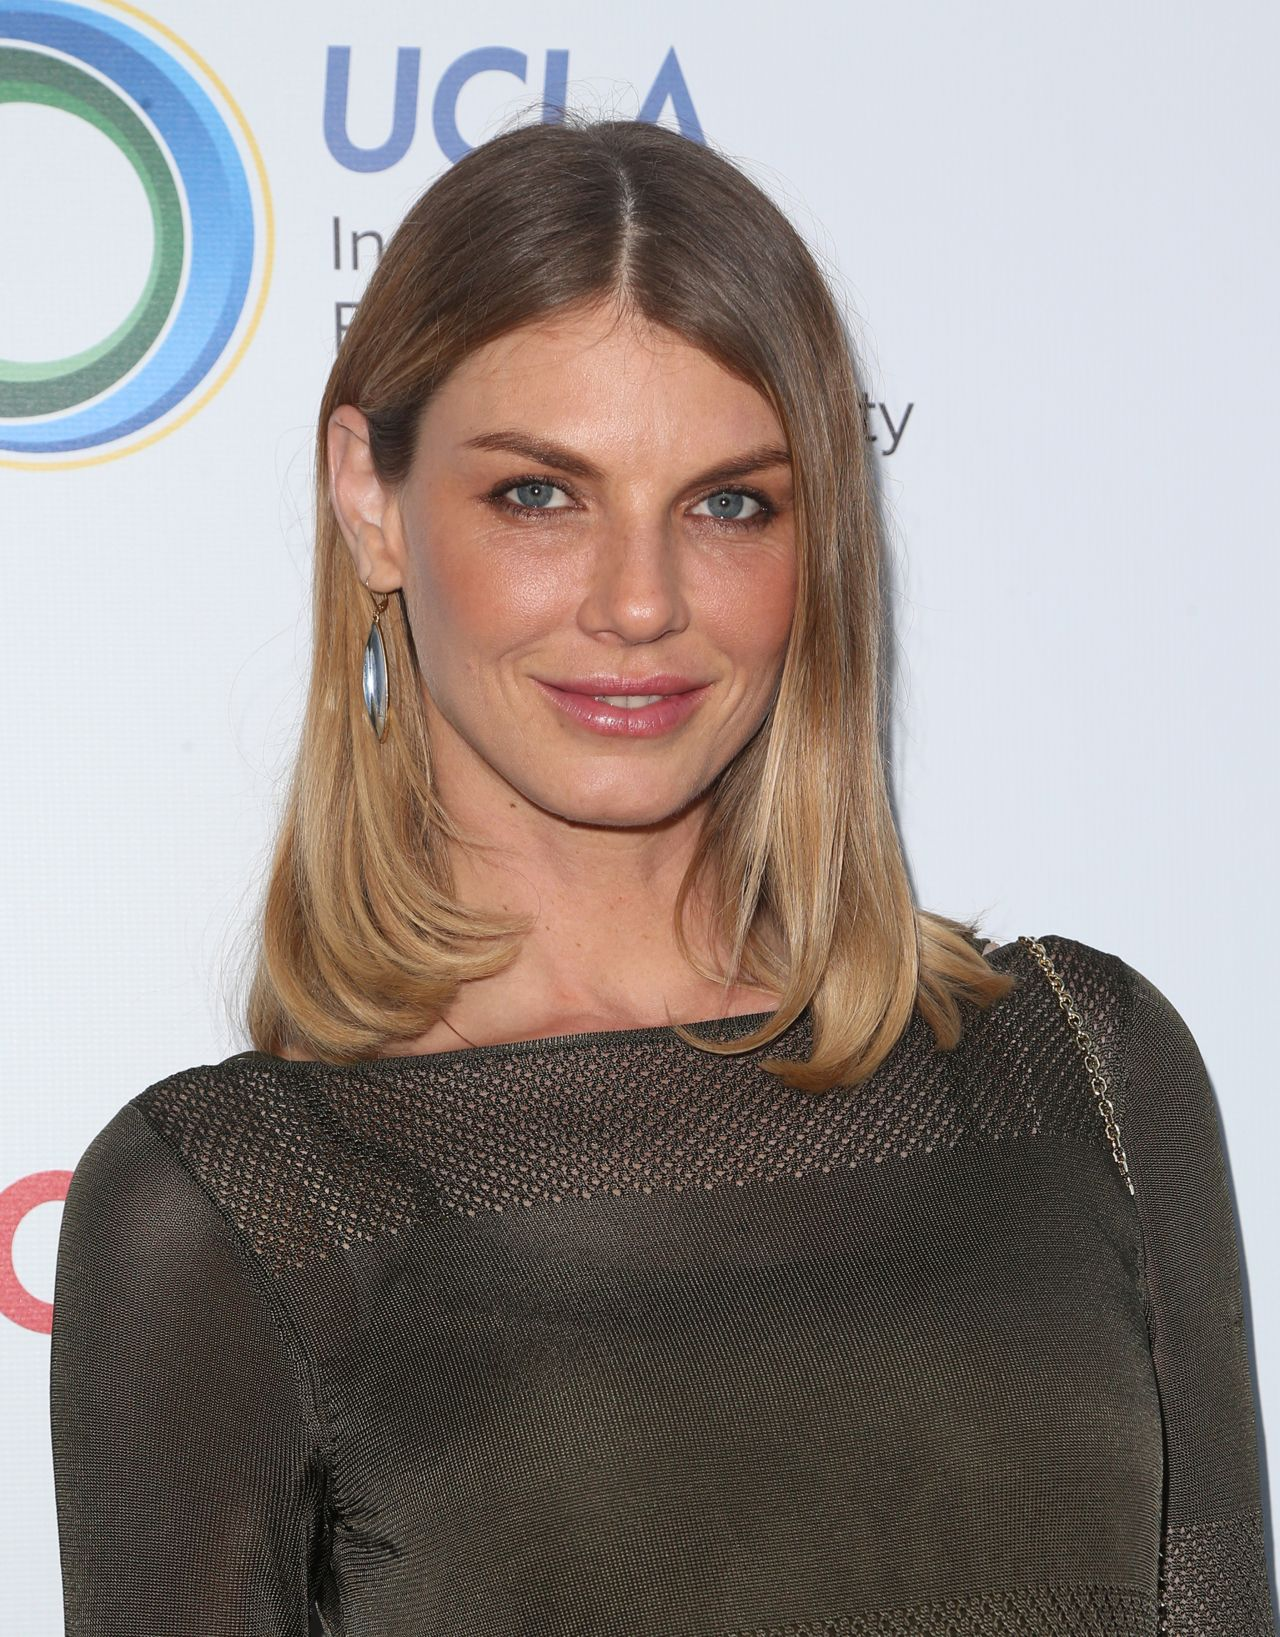 Paparazzi Angela Lindvall  nudes (41 images), iCloud, see through